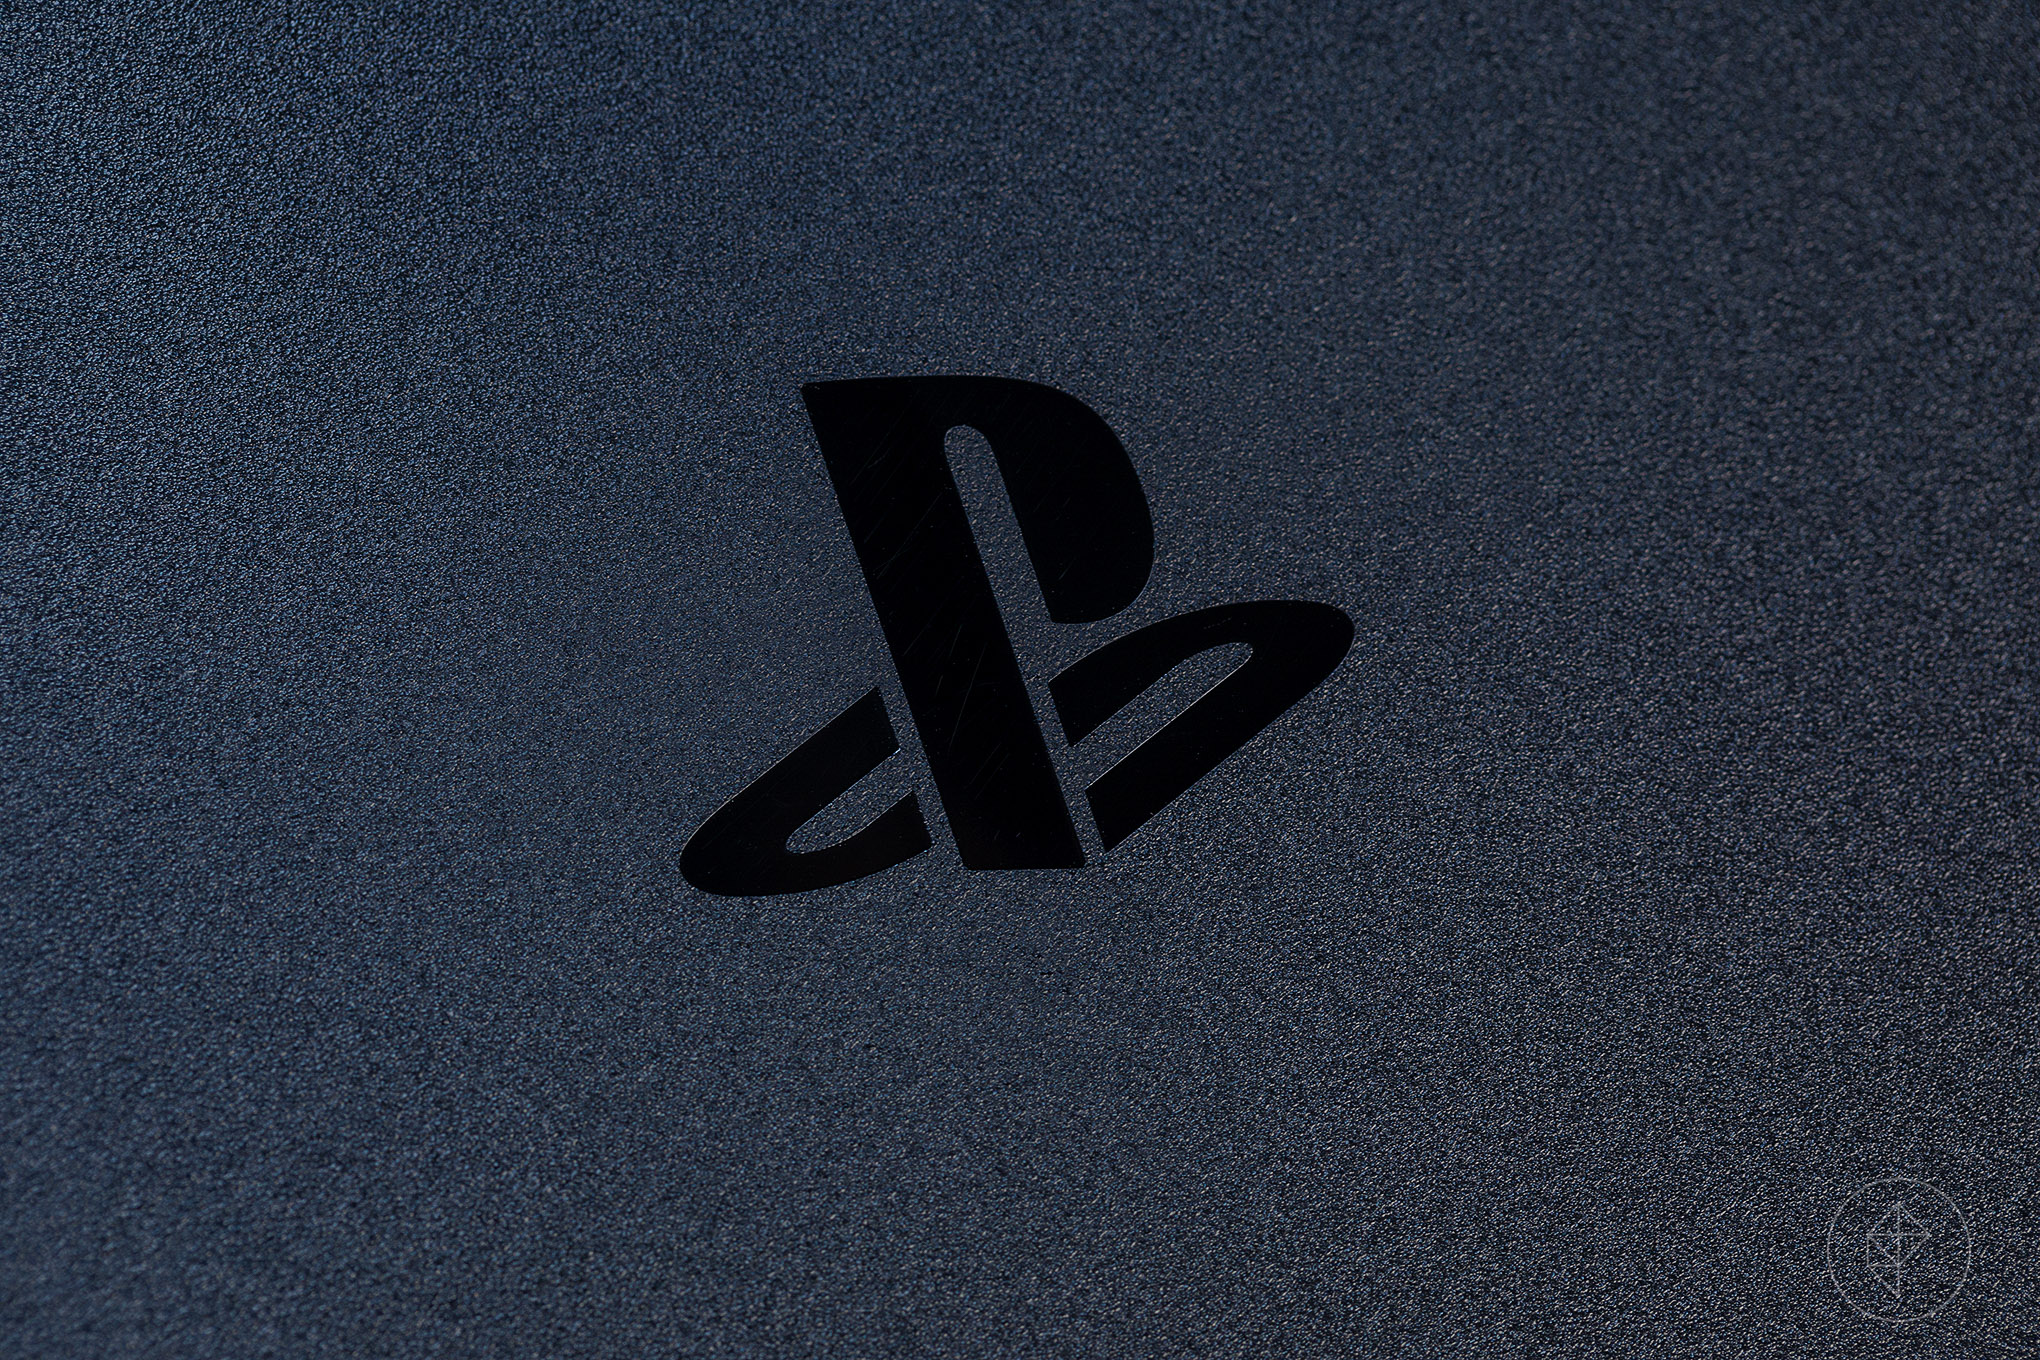 PlayStation 5 sounds expensive, but Sony says it has an 'appealing' price point